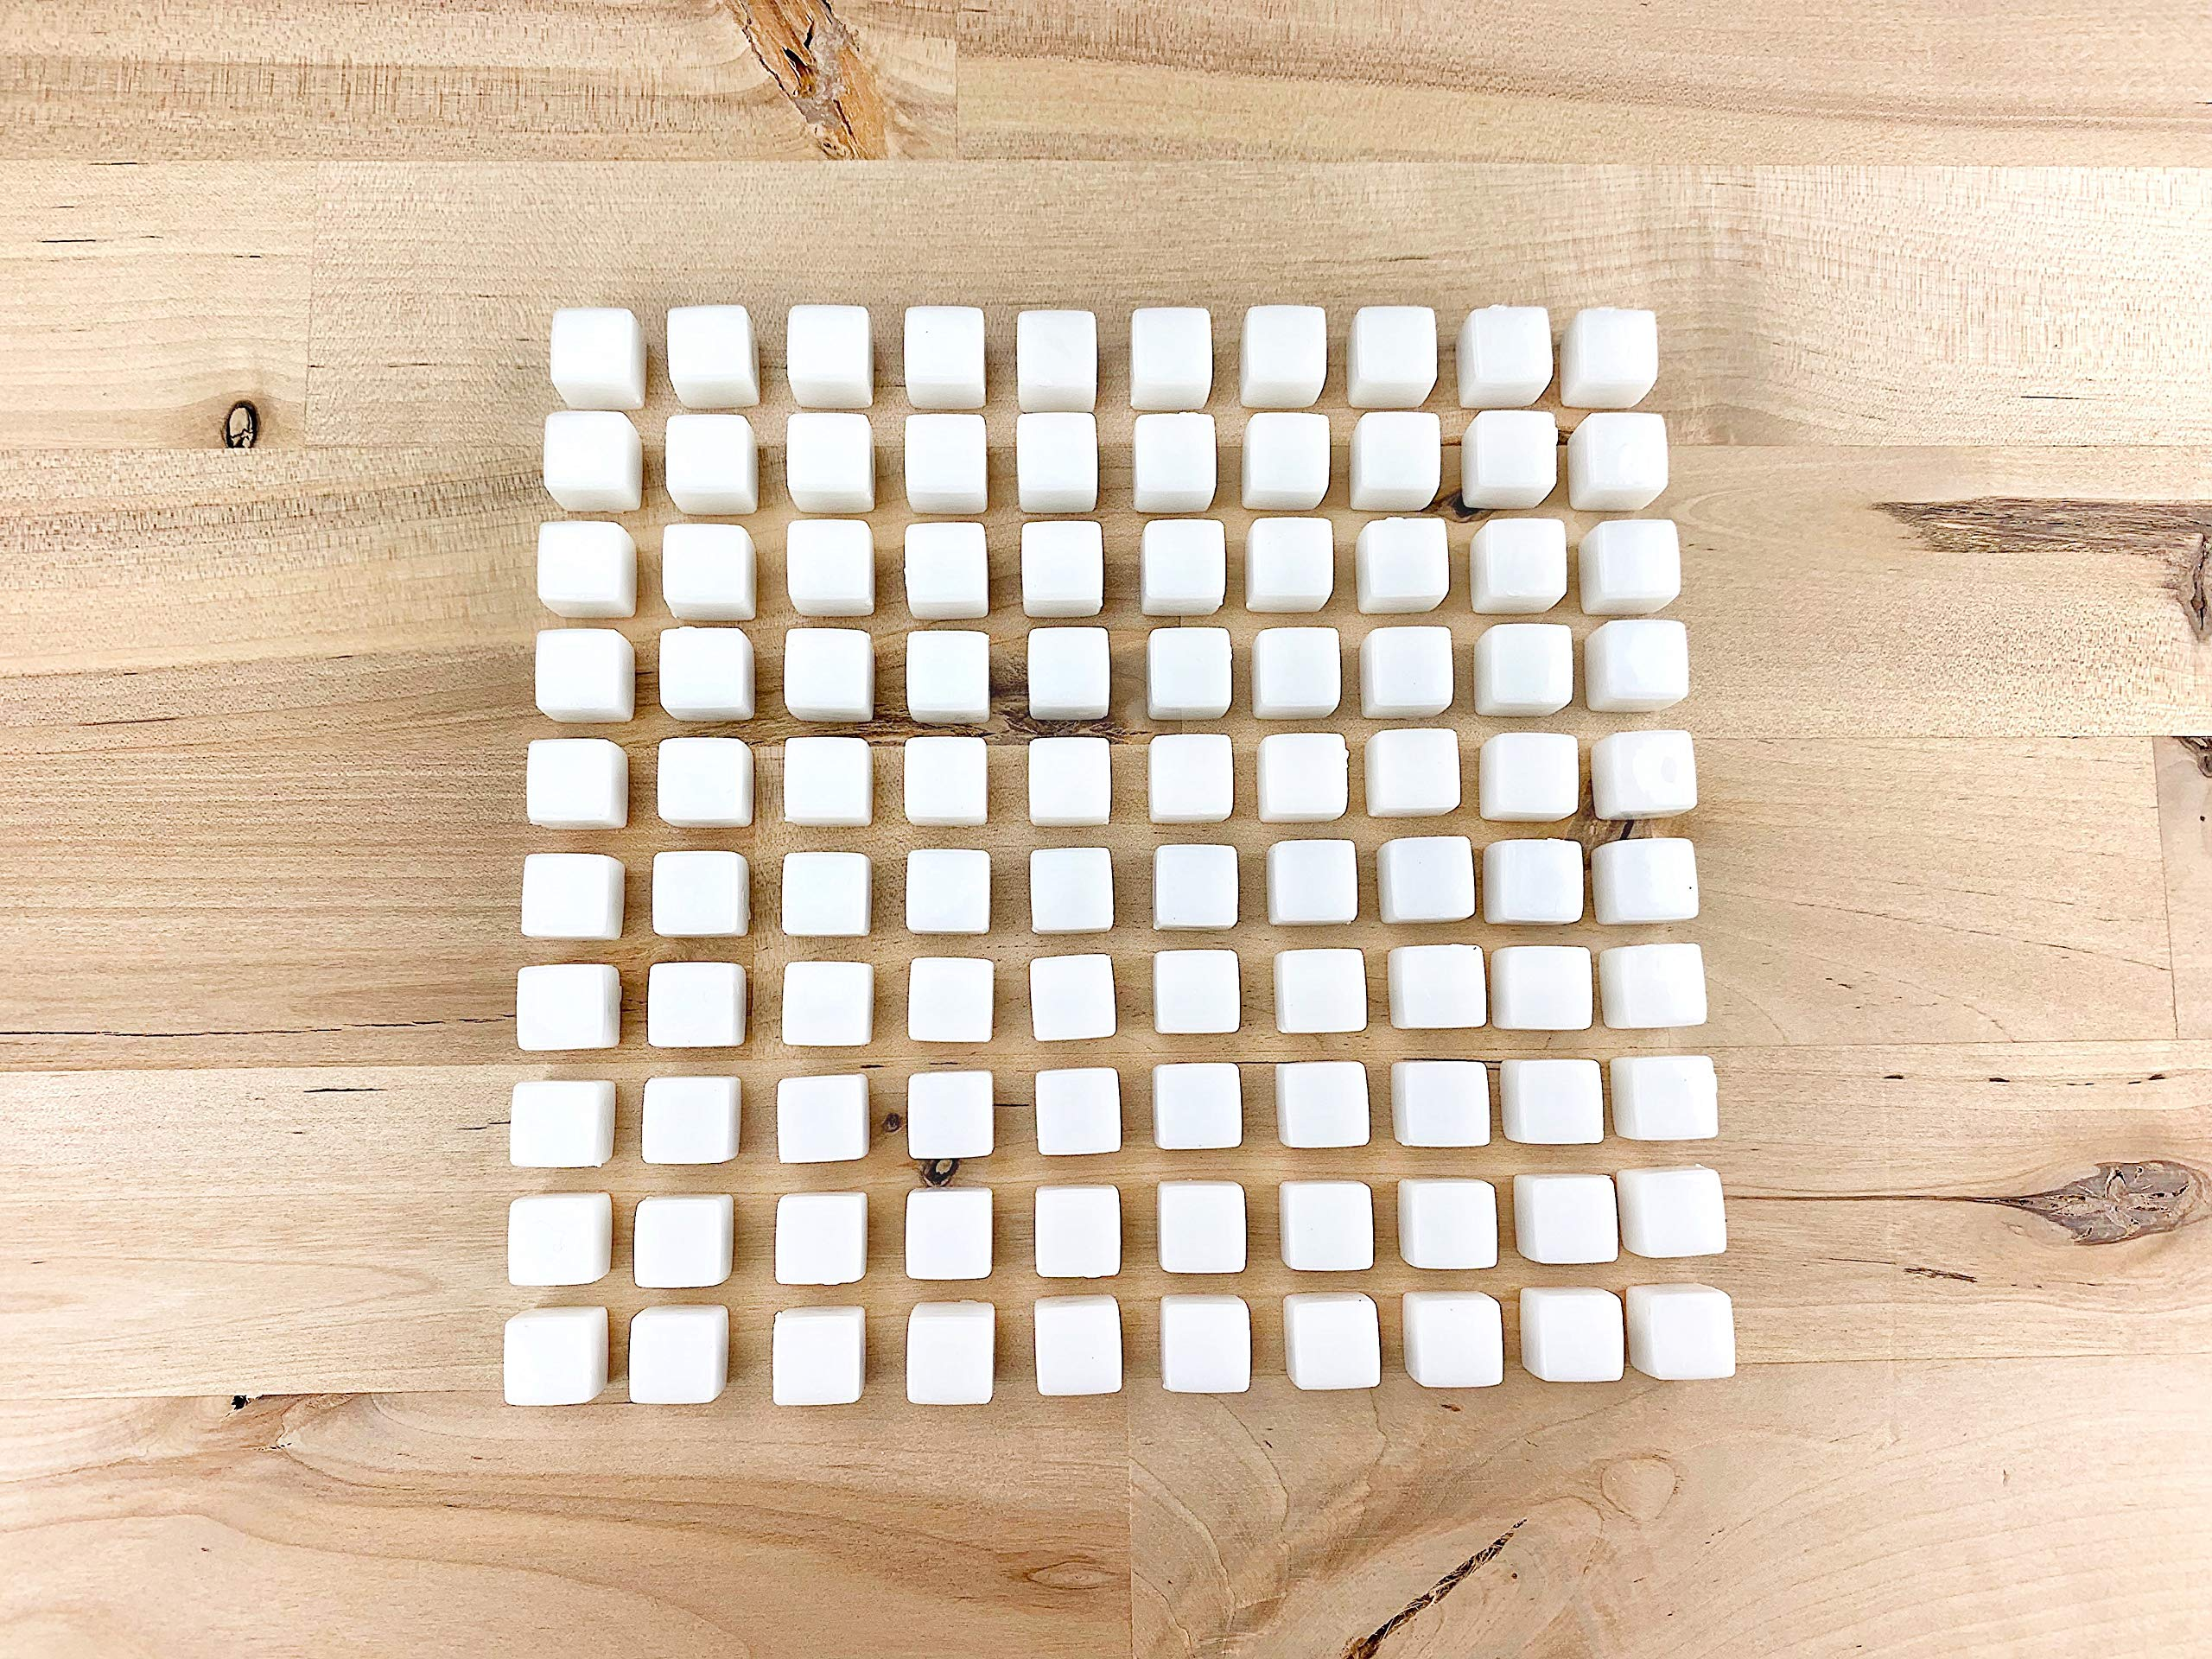 100 Opaque White Acrylic Cubes, 10mm or 2/5 inch by The Game Crafter